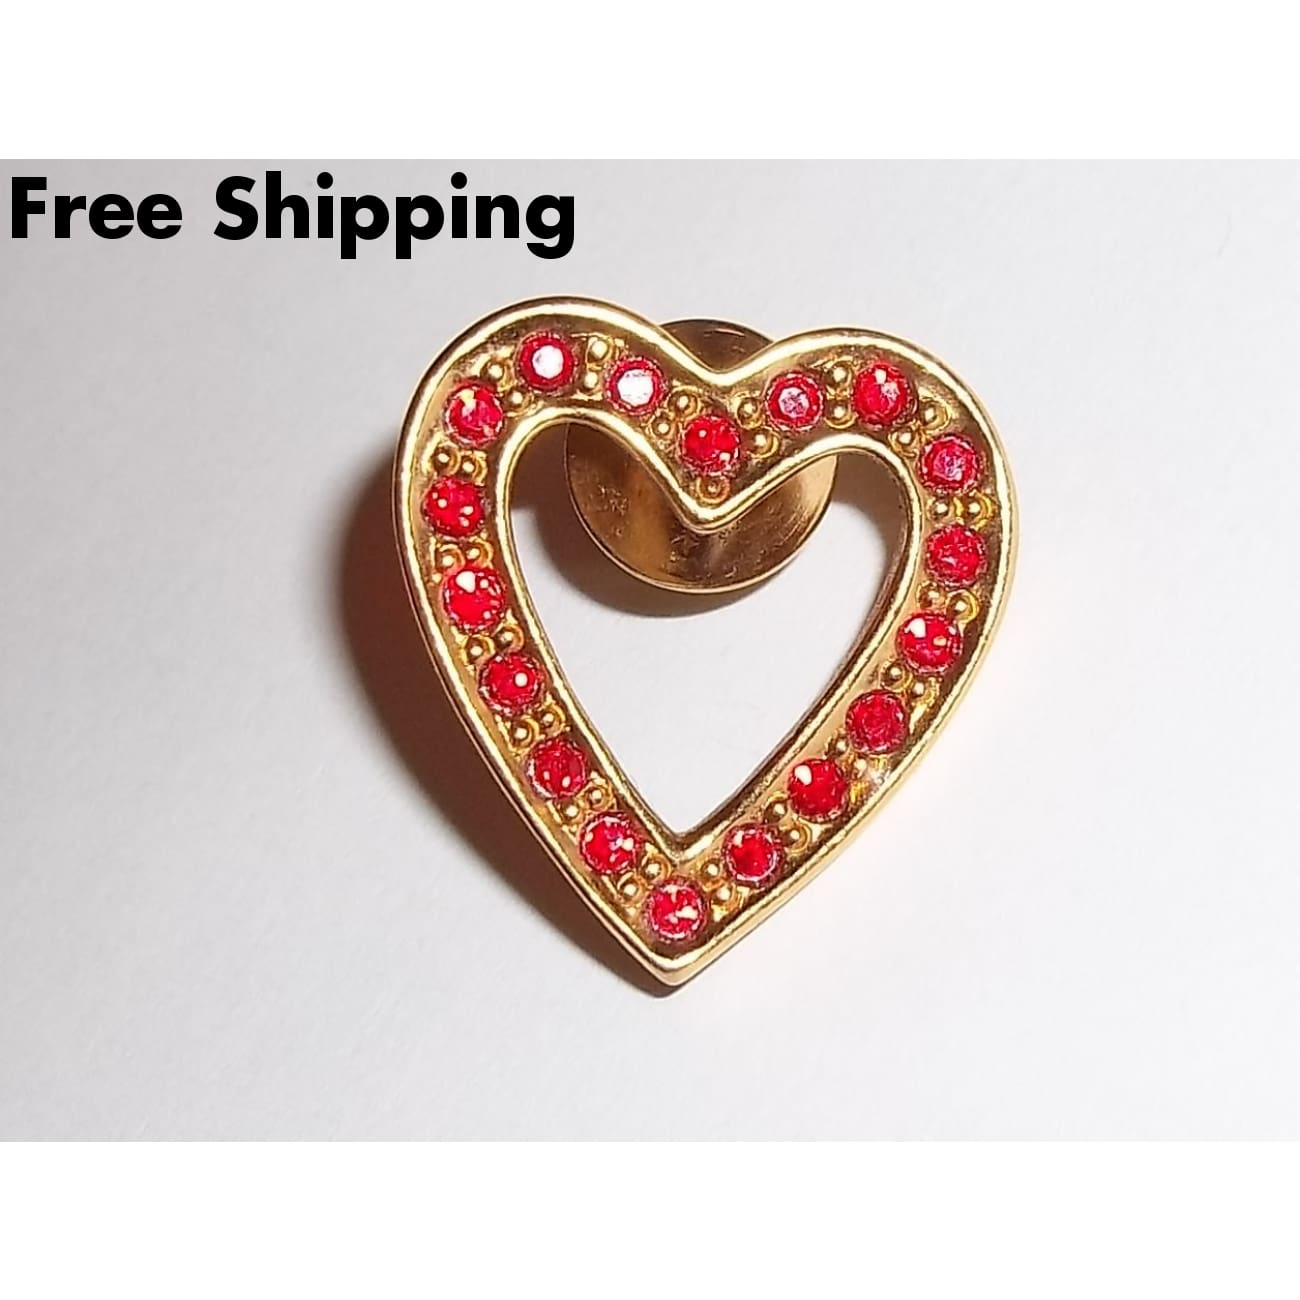 Vintage Signed Avon 1992 Sparkling Red Heart Gold Tone Brooch / Pin - Other Avon